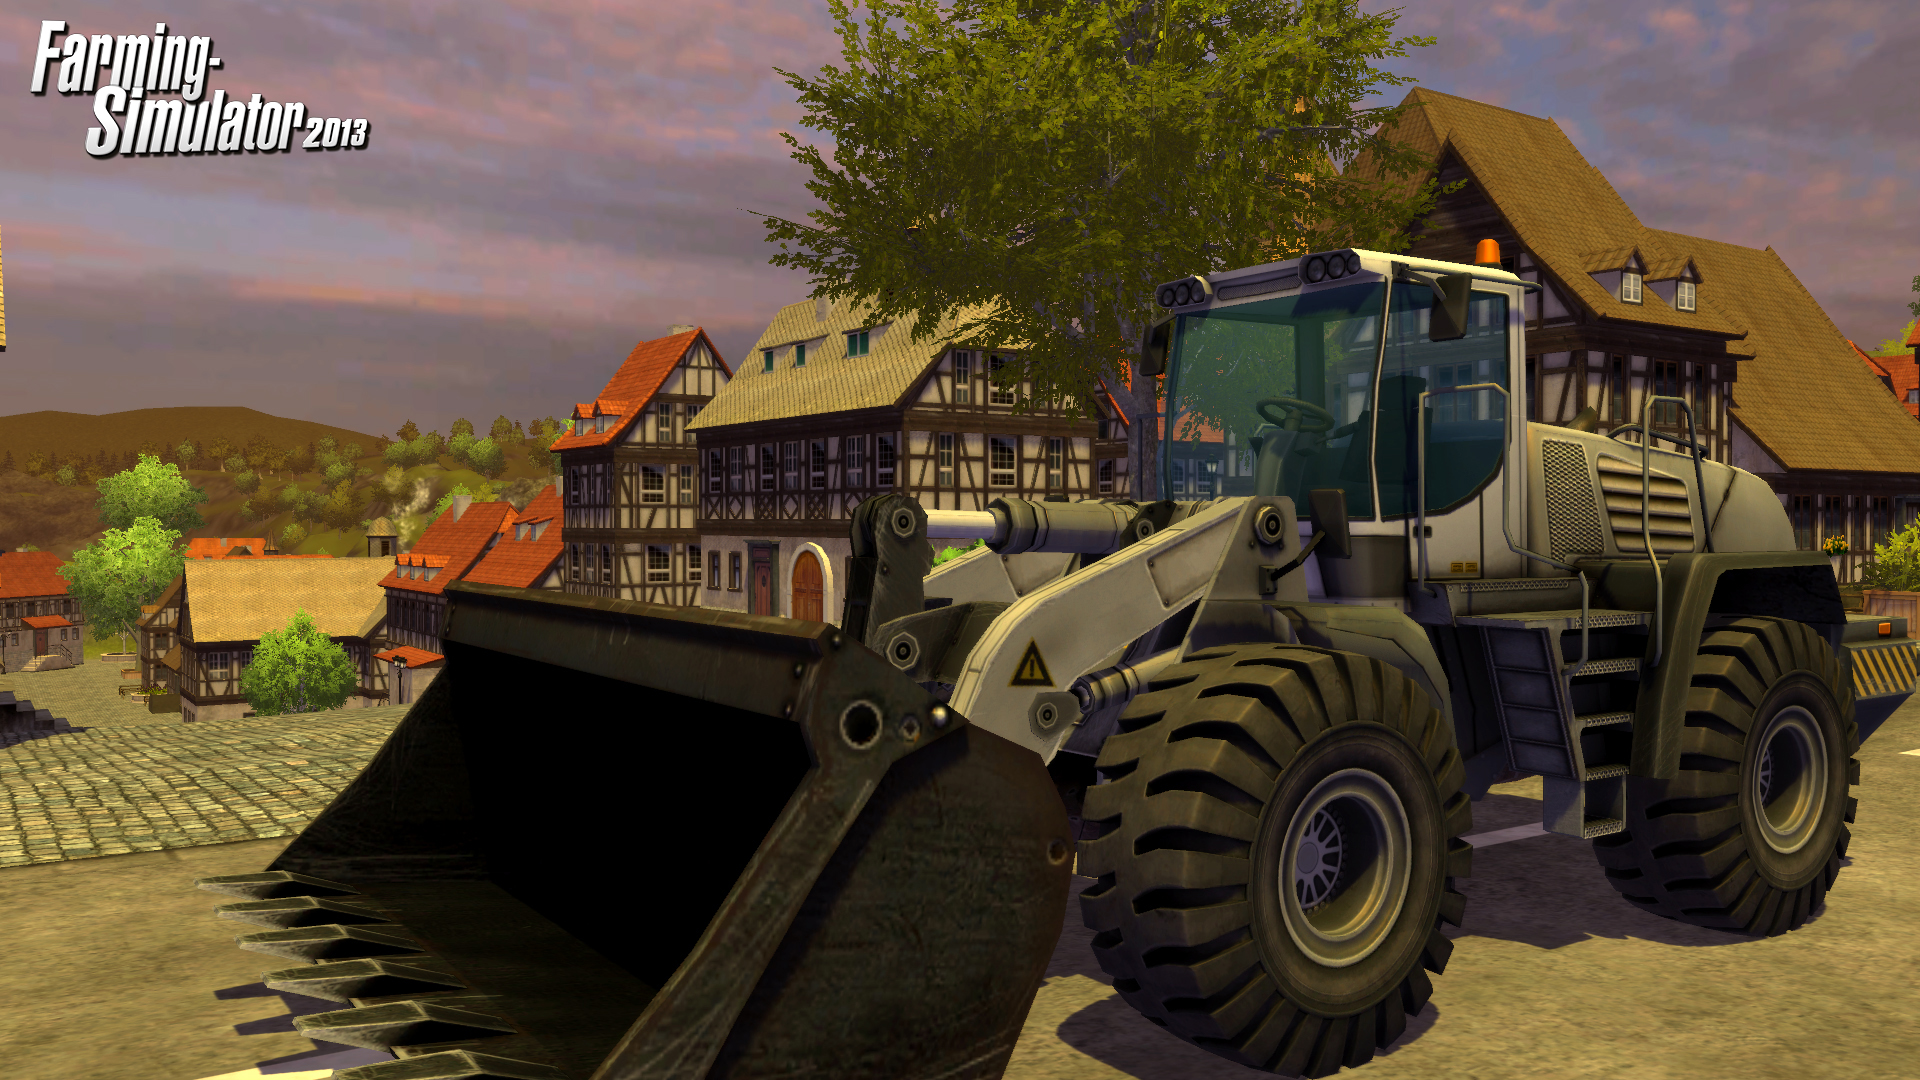 Farming Simulator 2013 invites you aboard the largest farming